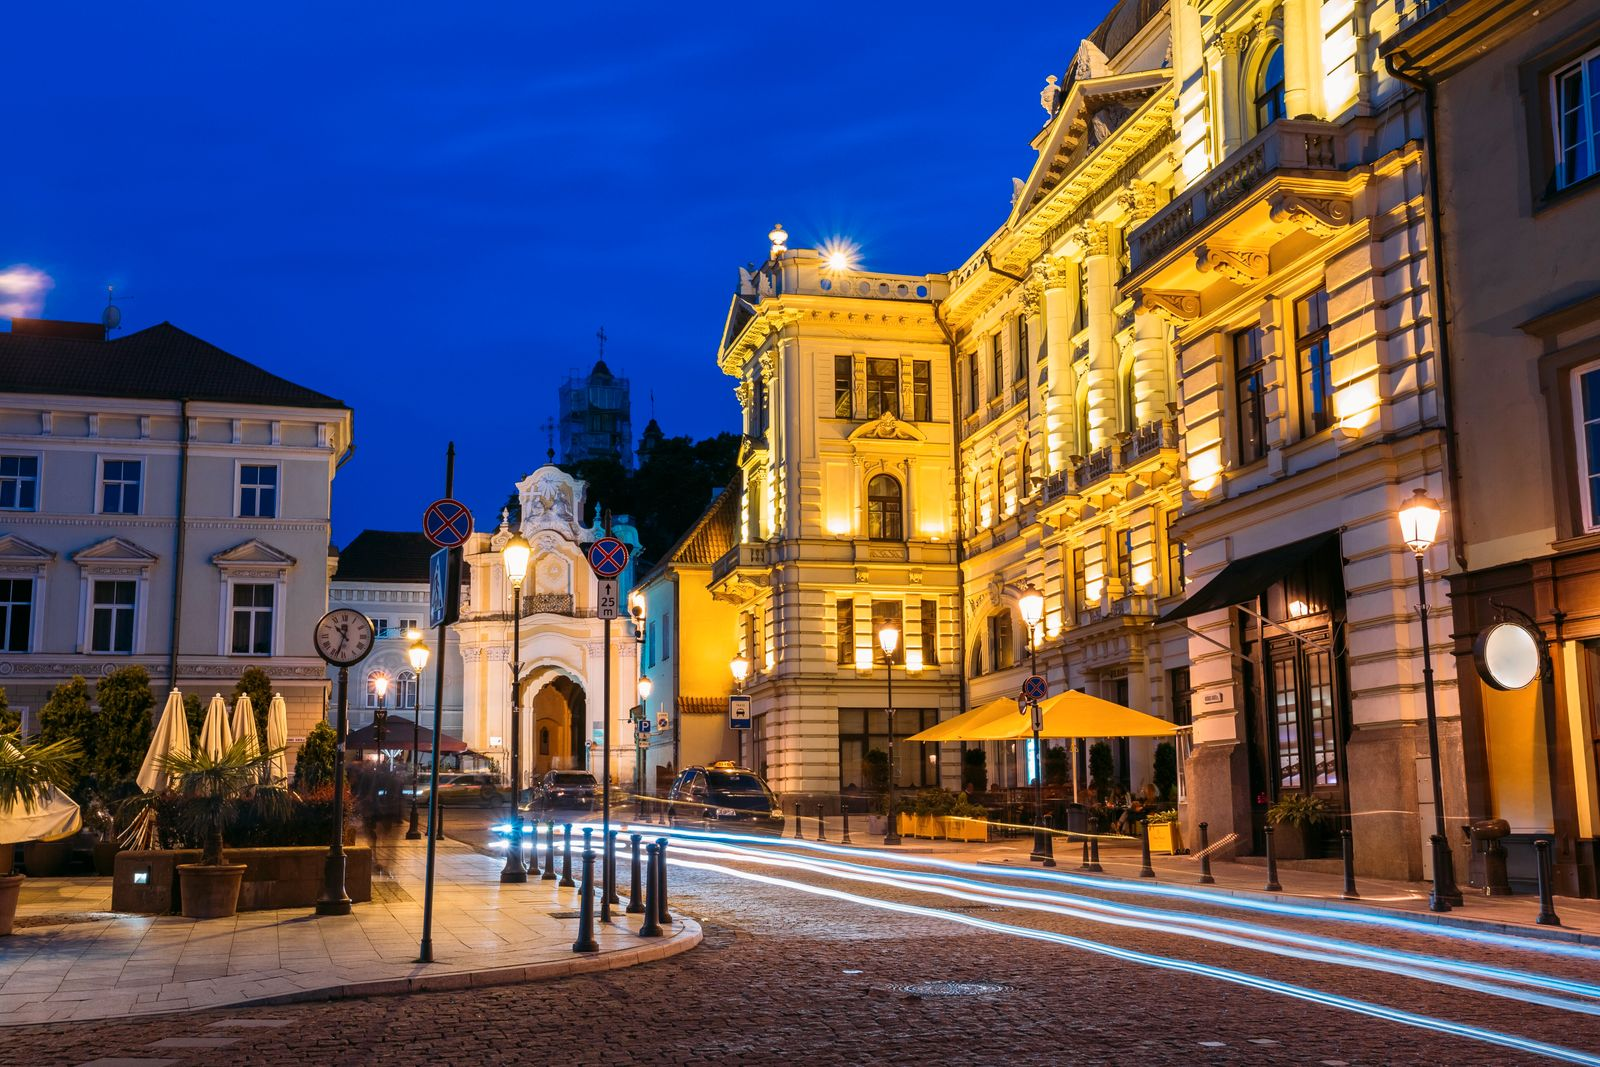 Vilnius Lithuania. Lithuanian National Philharmonic Society Building In Bright Evening Illumination And Basilian Gate On Ausros Vartu Street With Motion Blur Effect On Road In Summer Under Blue Sky. (Ryhor Bruyeu)